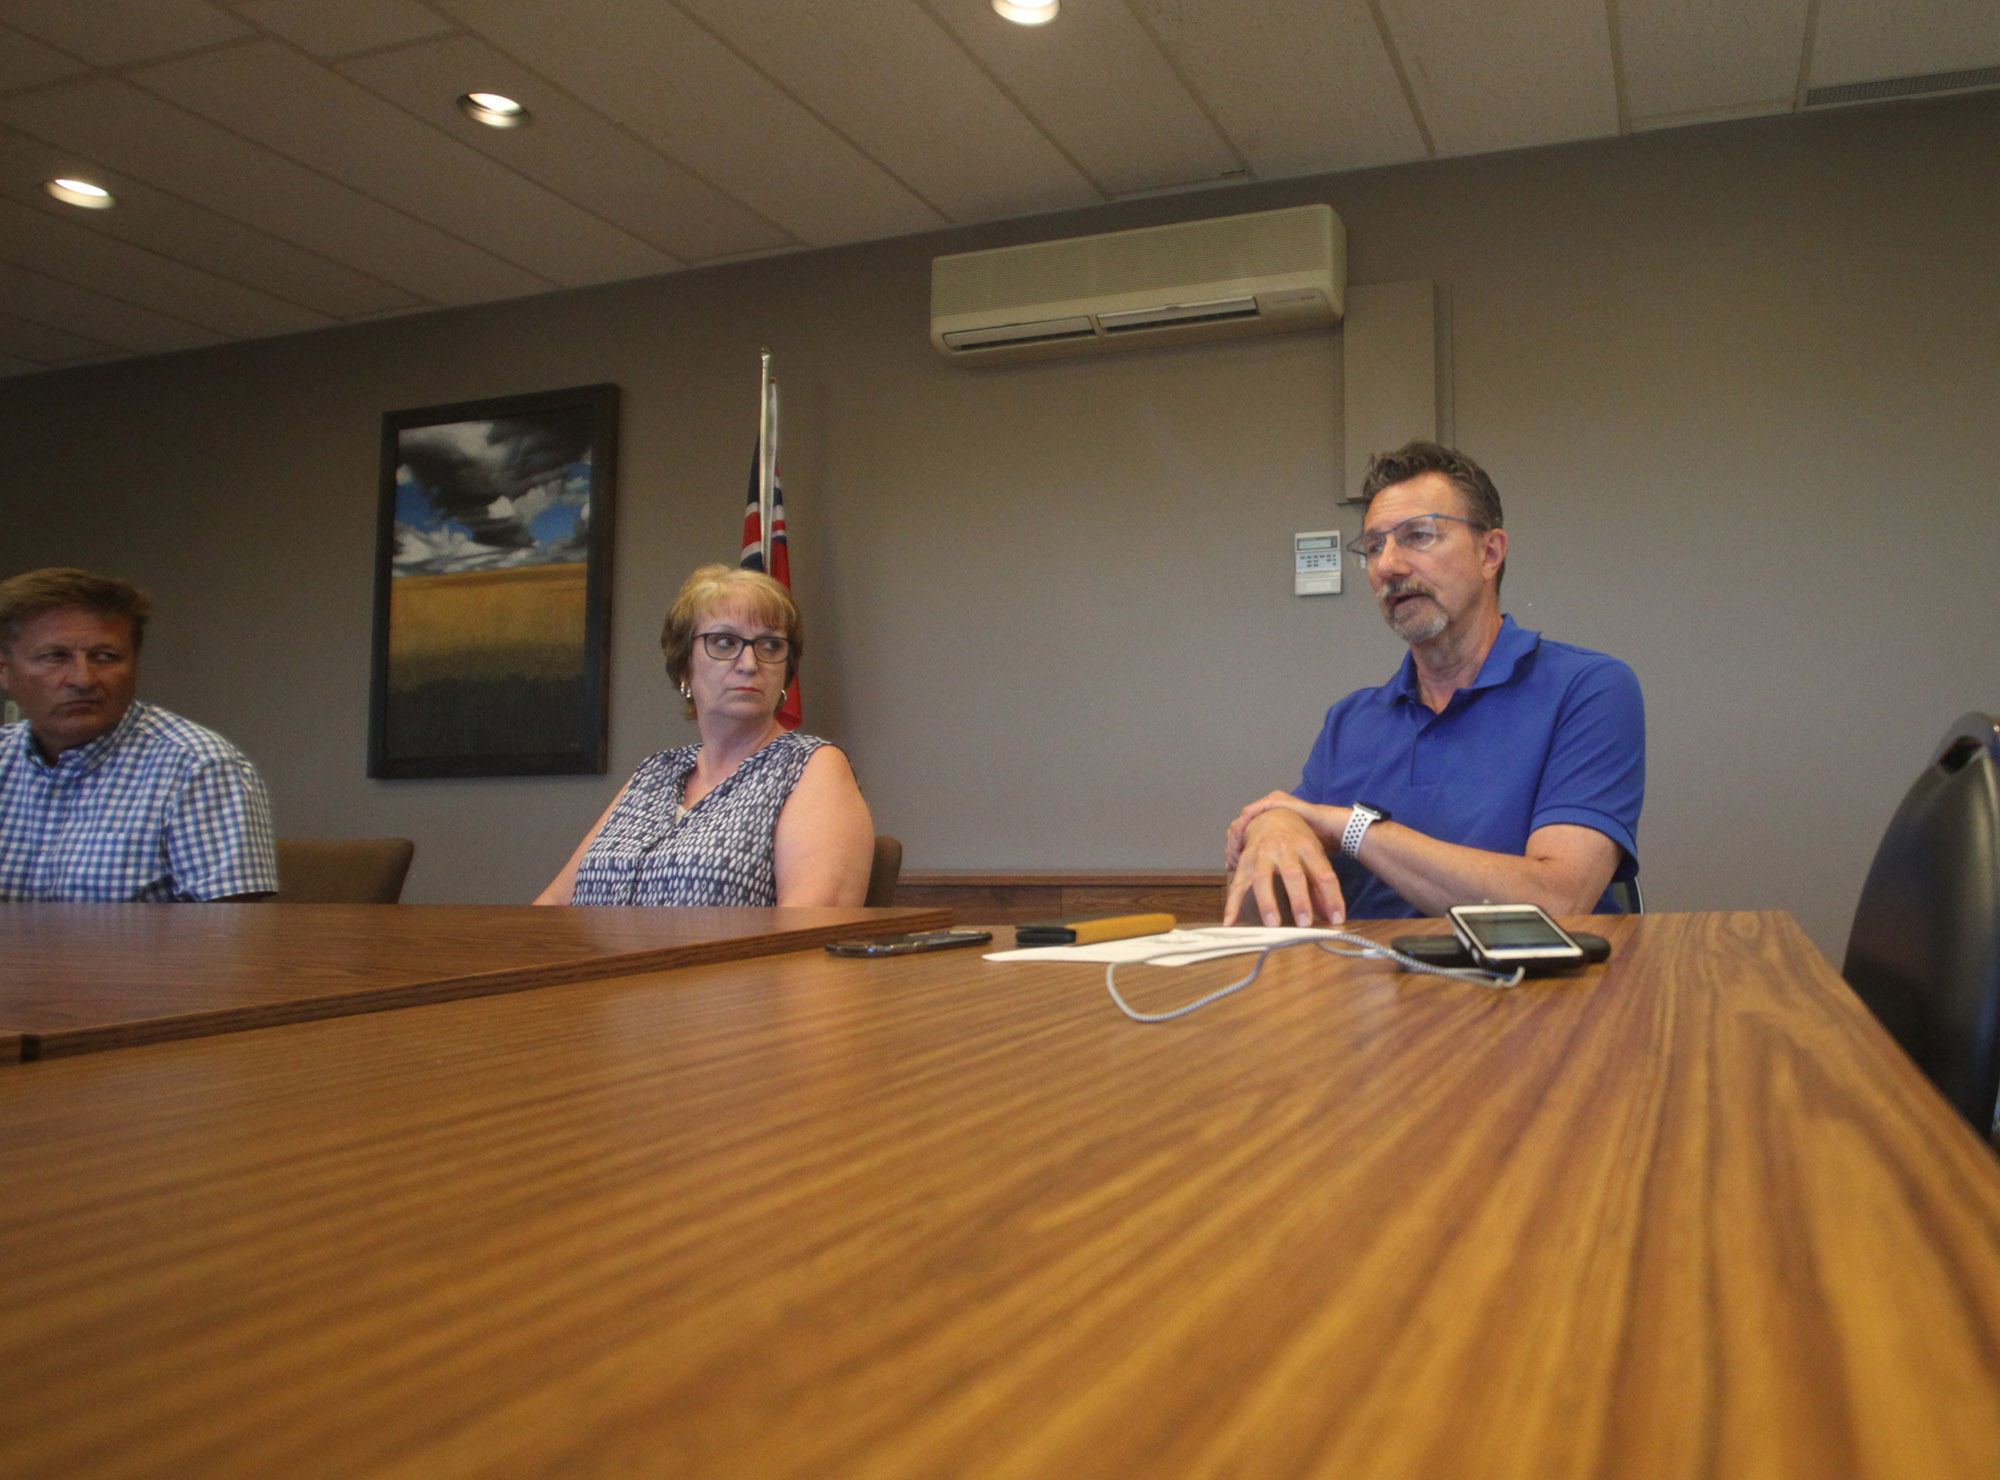 Mayor Rick Chrest speaks as Agassiz MLA Eileen Clarke and Infrastructure Minister Ron Schuler look on during a media conference in Brandon on Wednesday evening.